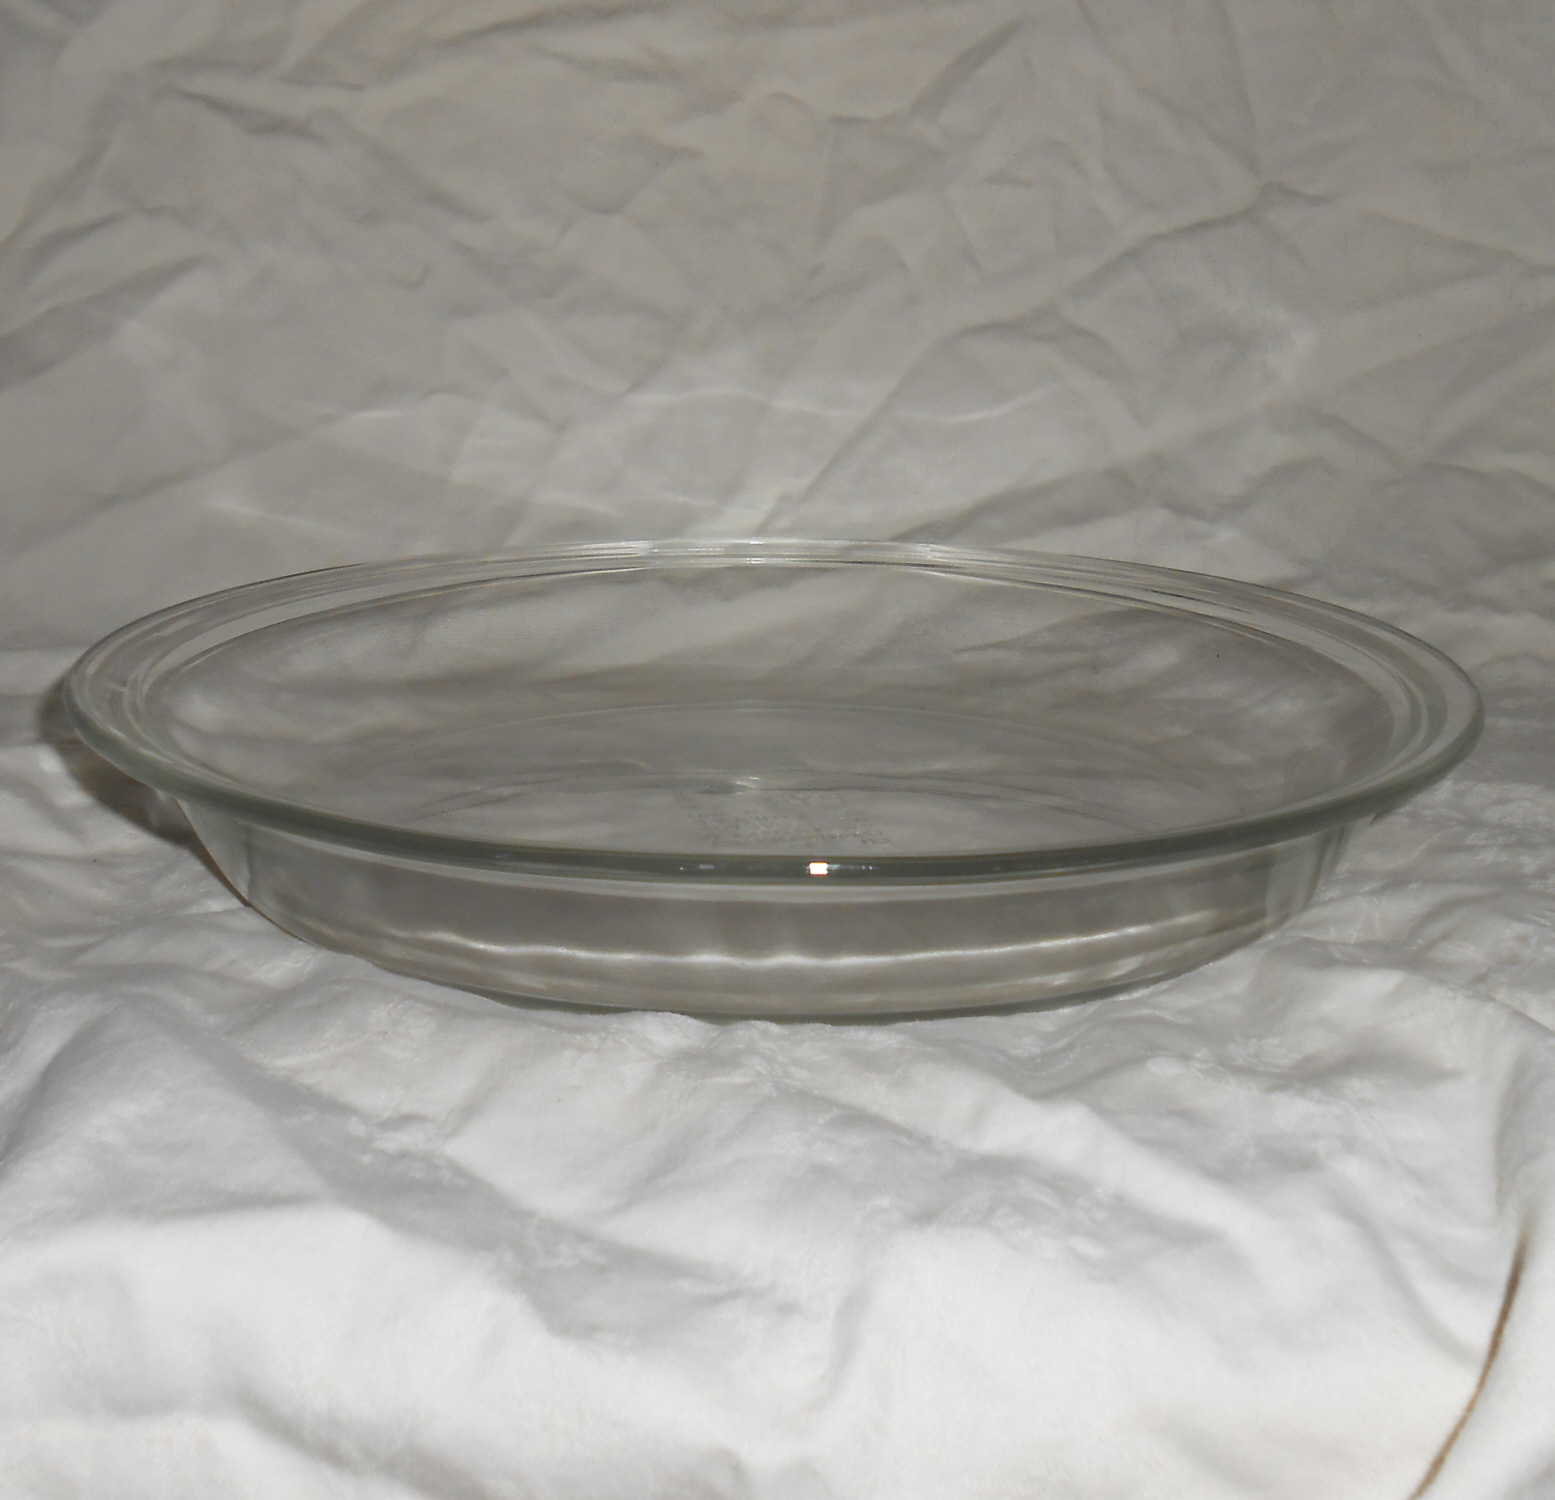 ... Vintage 9 inch Pyrex #209 Clear Glass Pie Plate ... & Vintage 9 inch Pyrex #209 Clear Glass Pie and 11 similar items